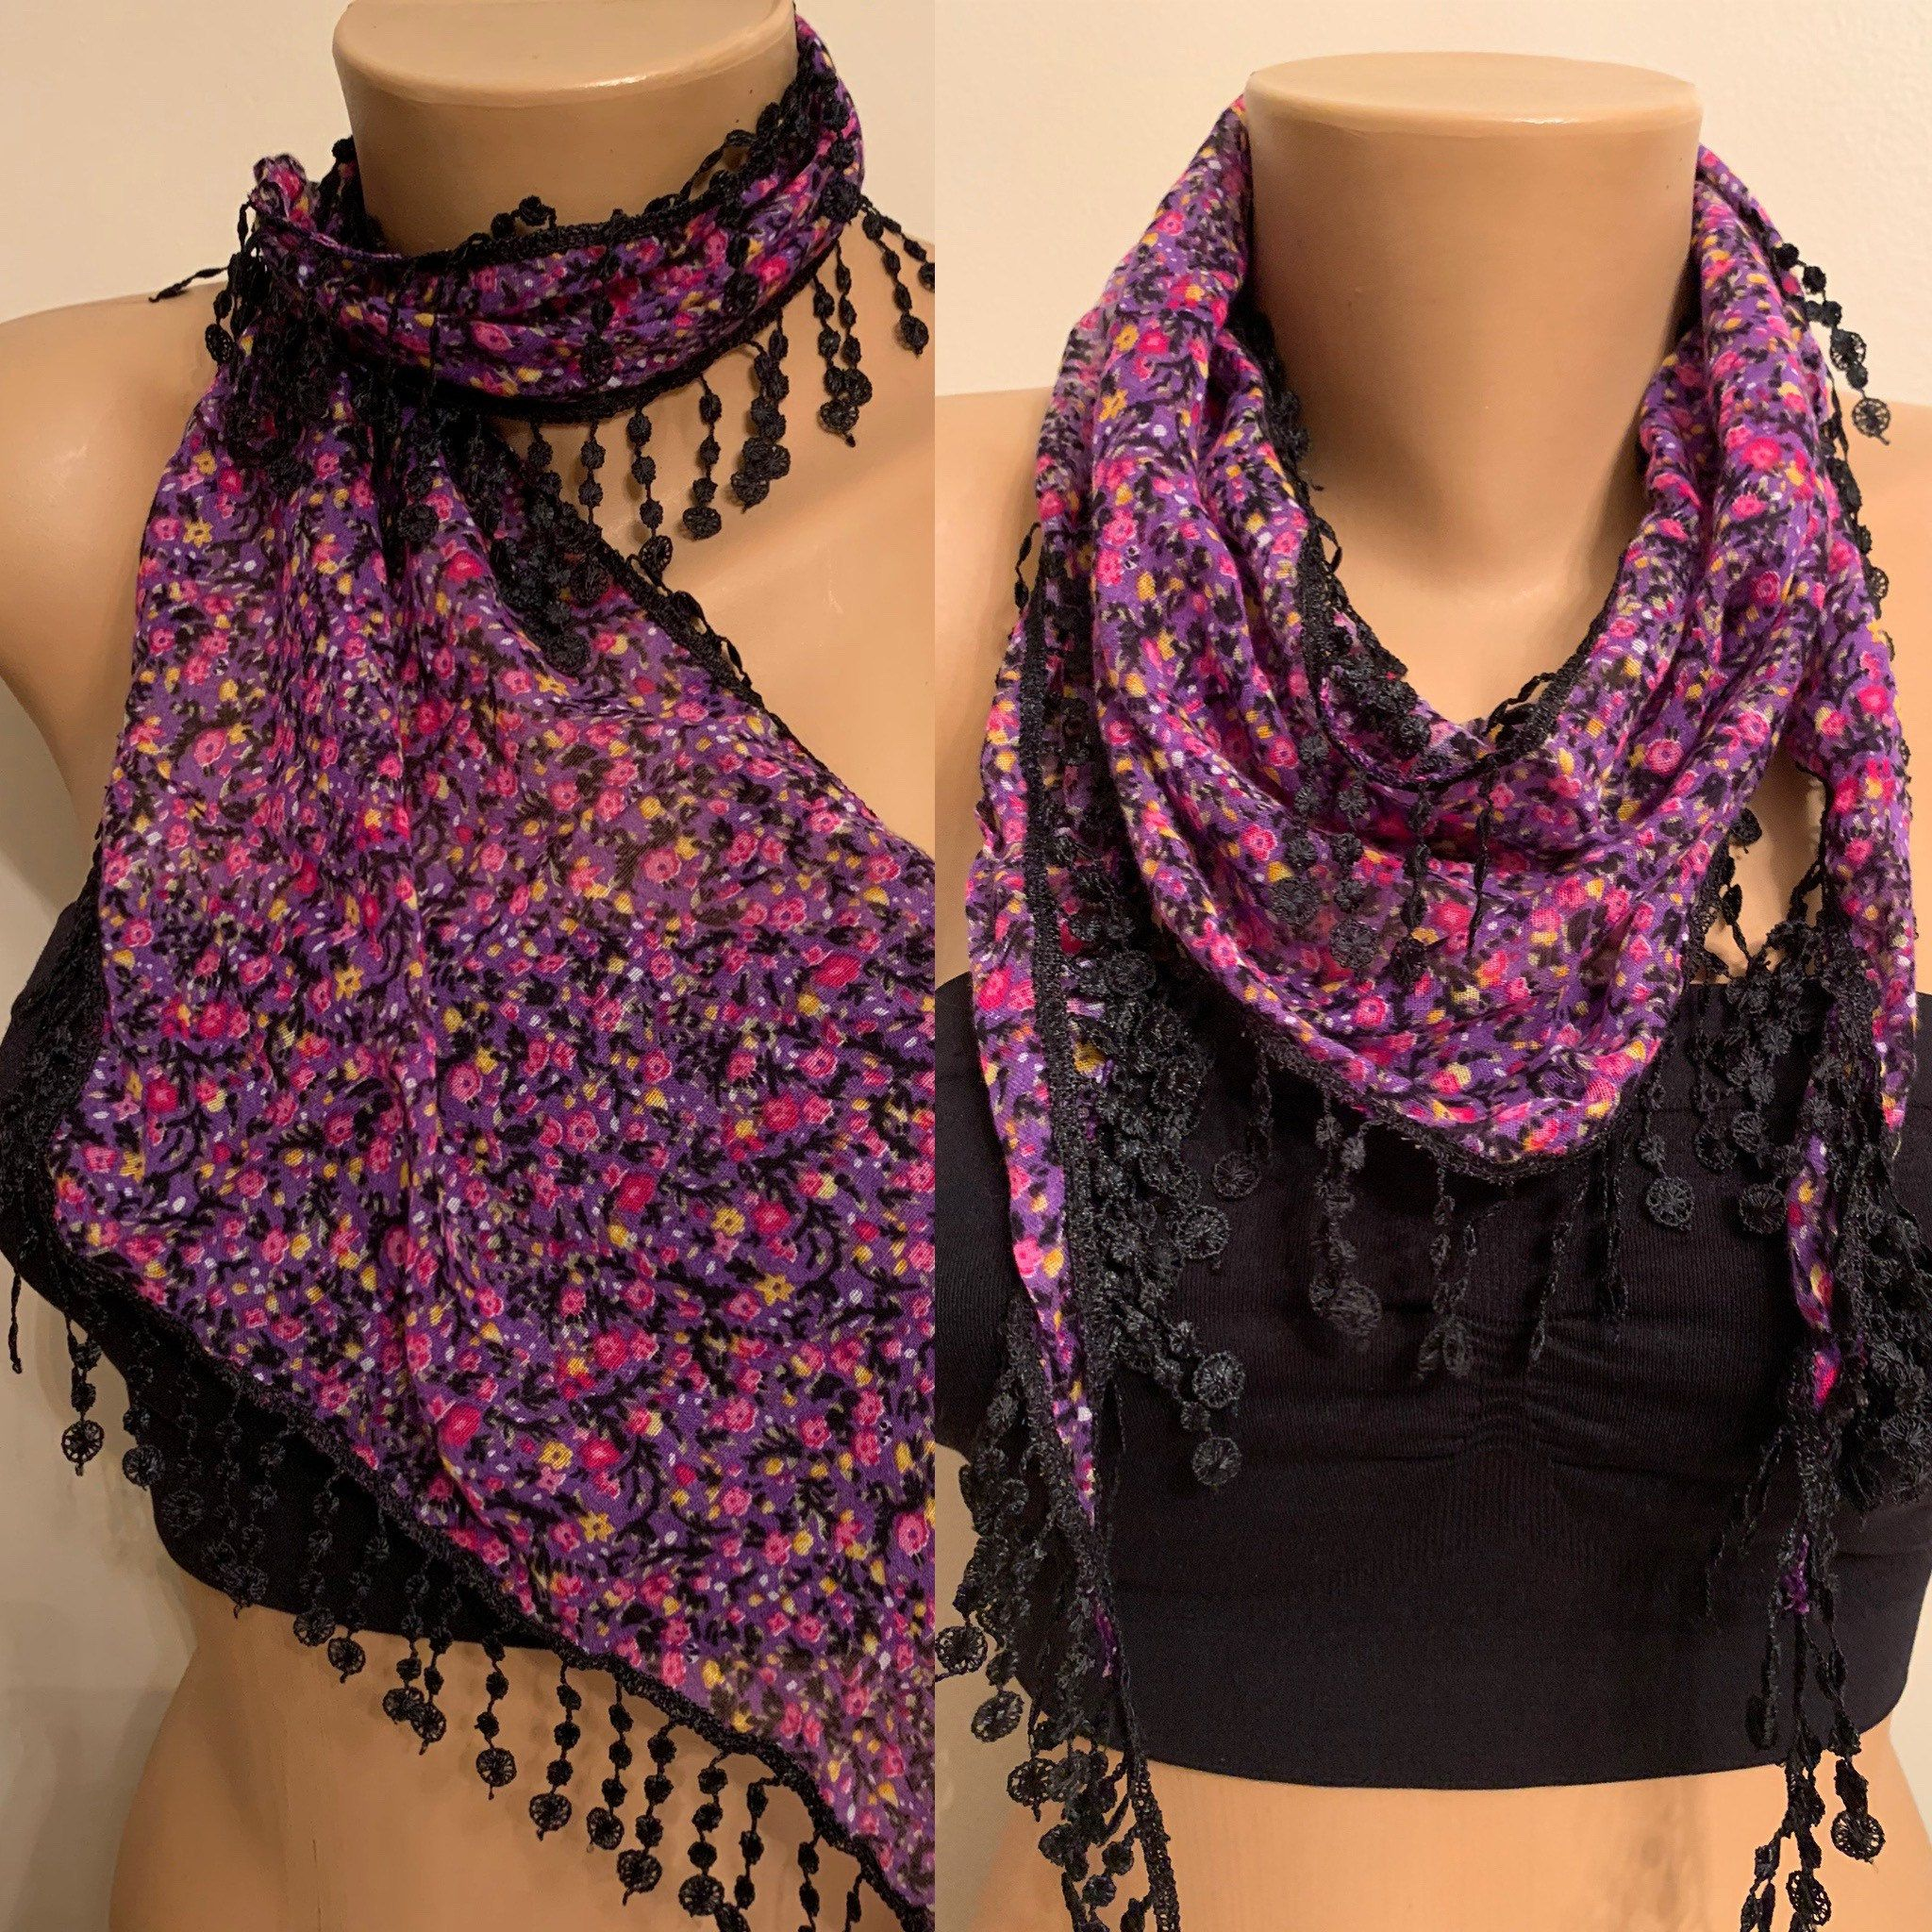 Photo of Purple Black Floral Scarf, Cotton Lace Scarf, Gift for her, Birthday Gifts, Floral Headbands, Best Gifts for Mom, Soft Triangle Scarf